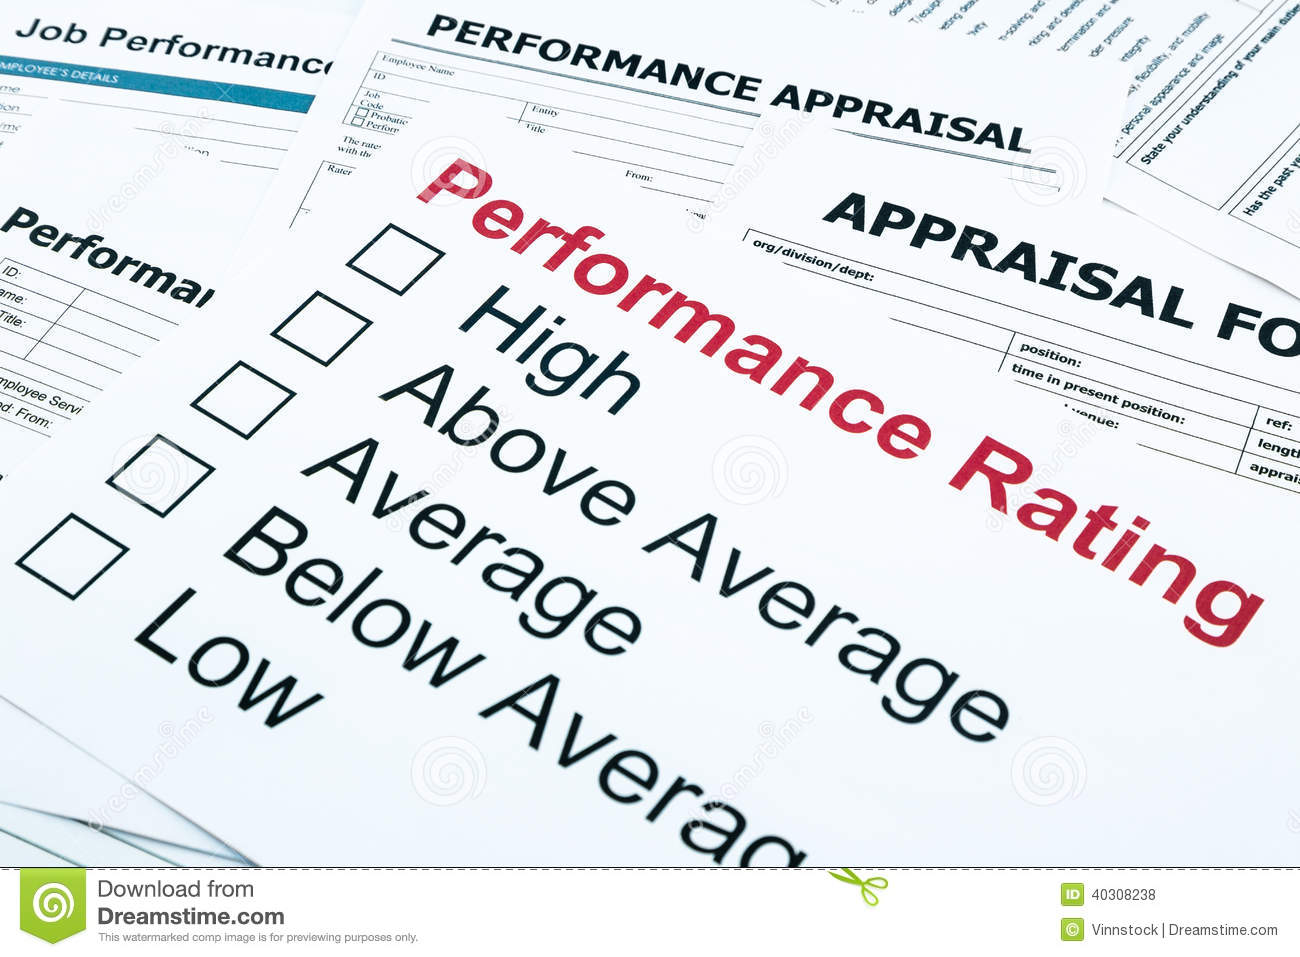 240+ Performance Evaluation Phrases – Sample Performance Review Statements